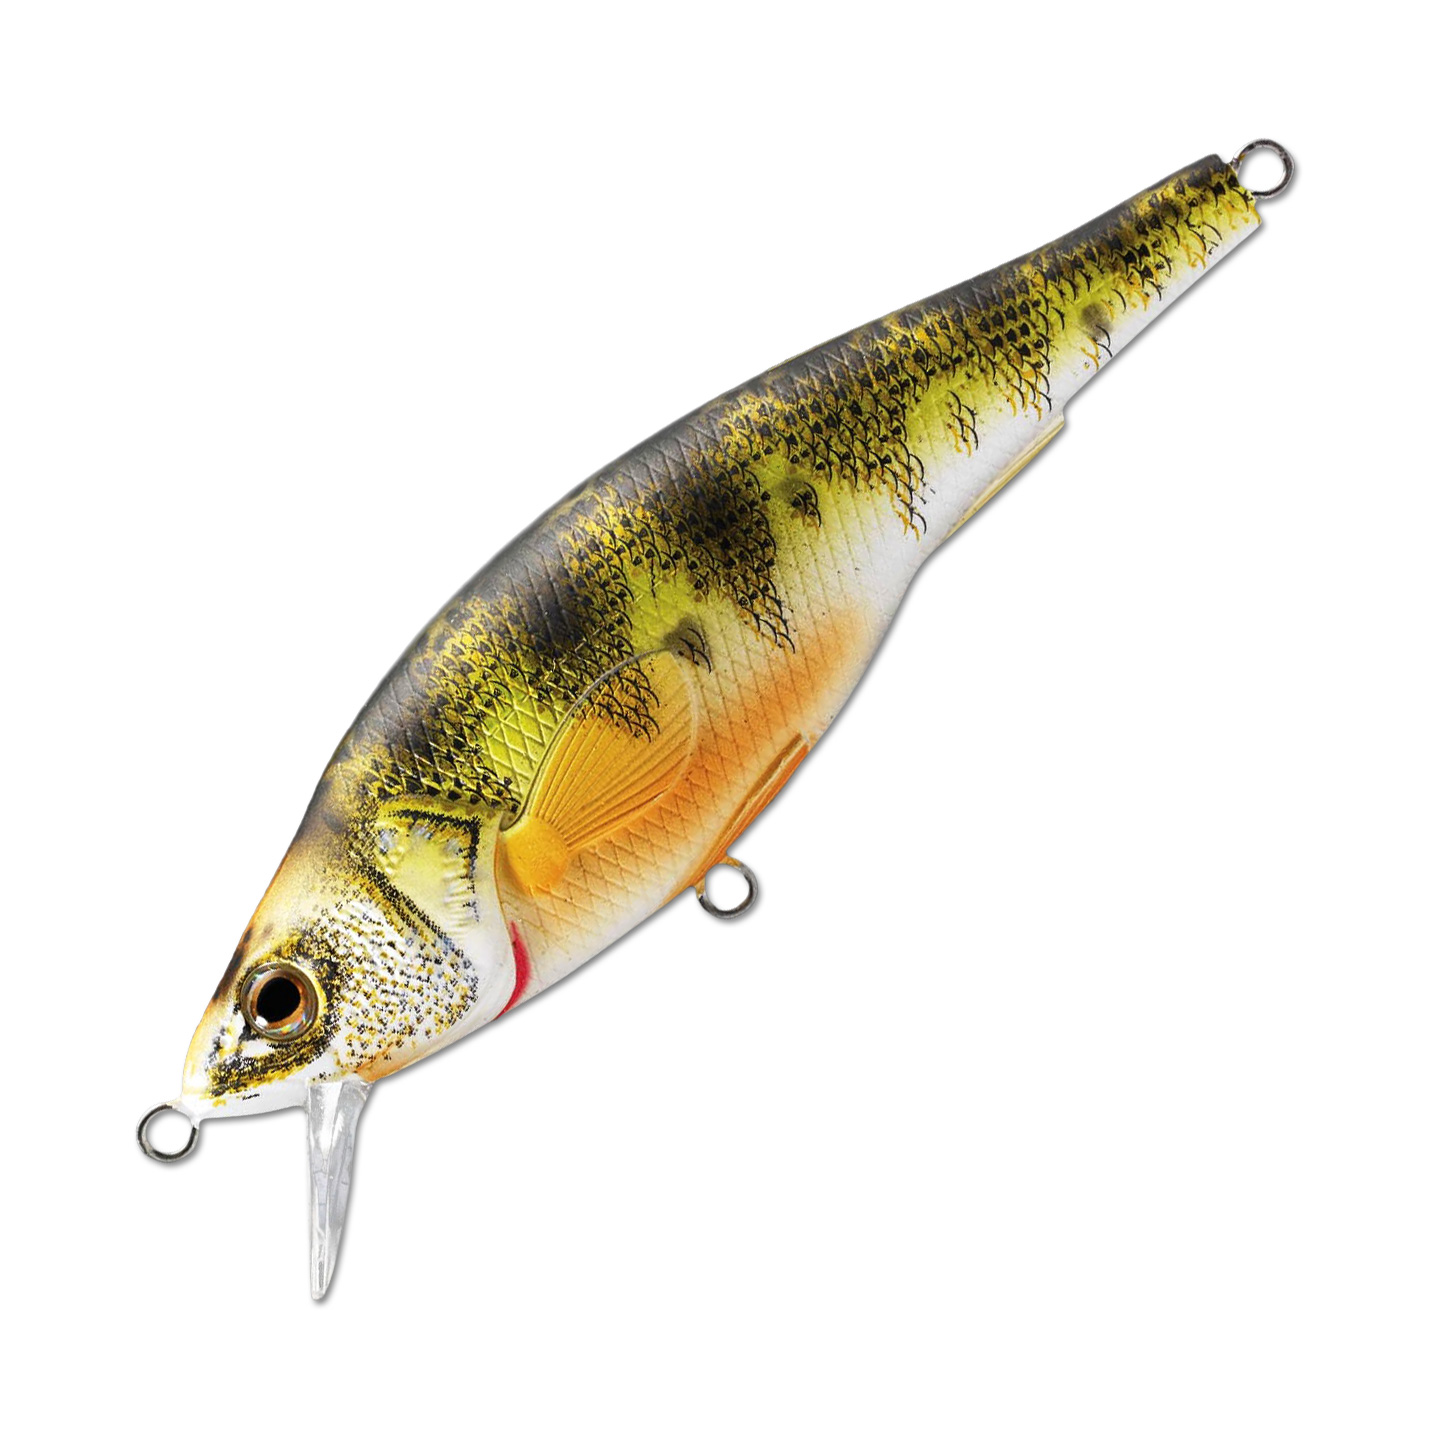 Воблер LiveTarget Yellow Perch Jerkbait 115SP вес 35  гр. цвет  100 Natural/Matte